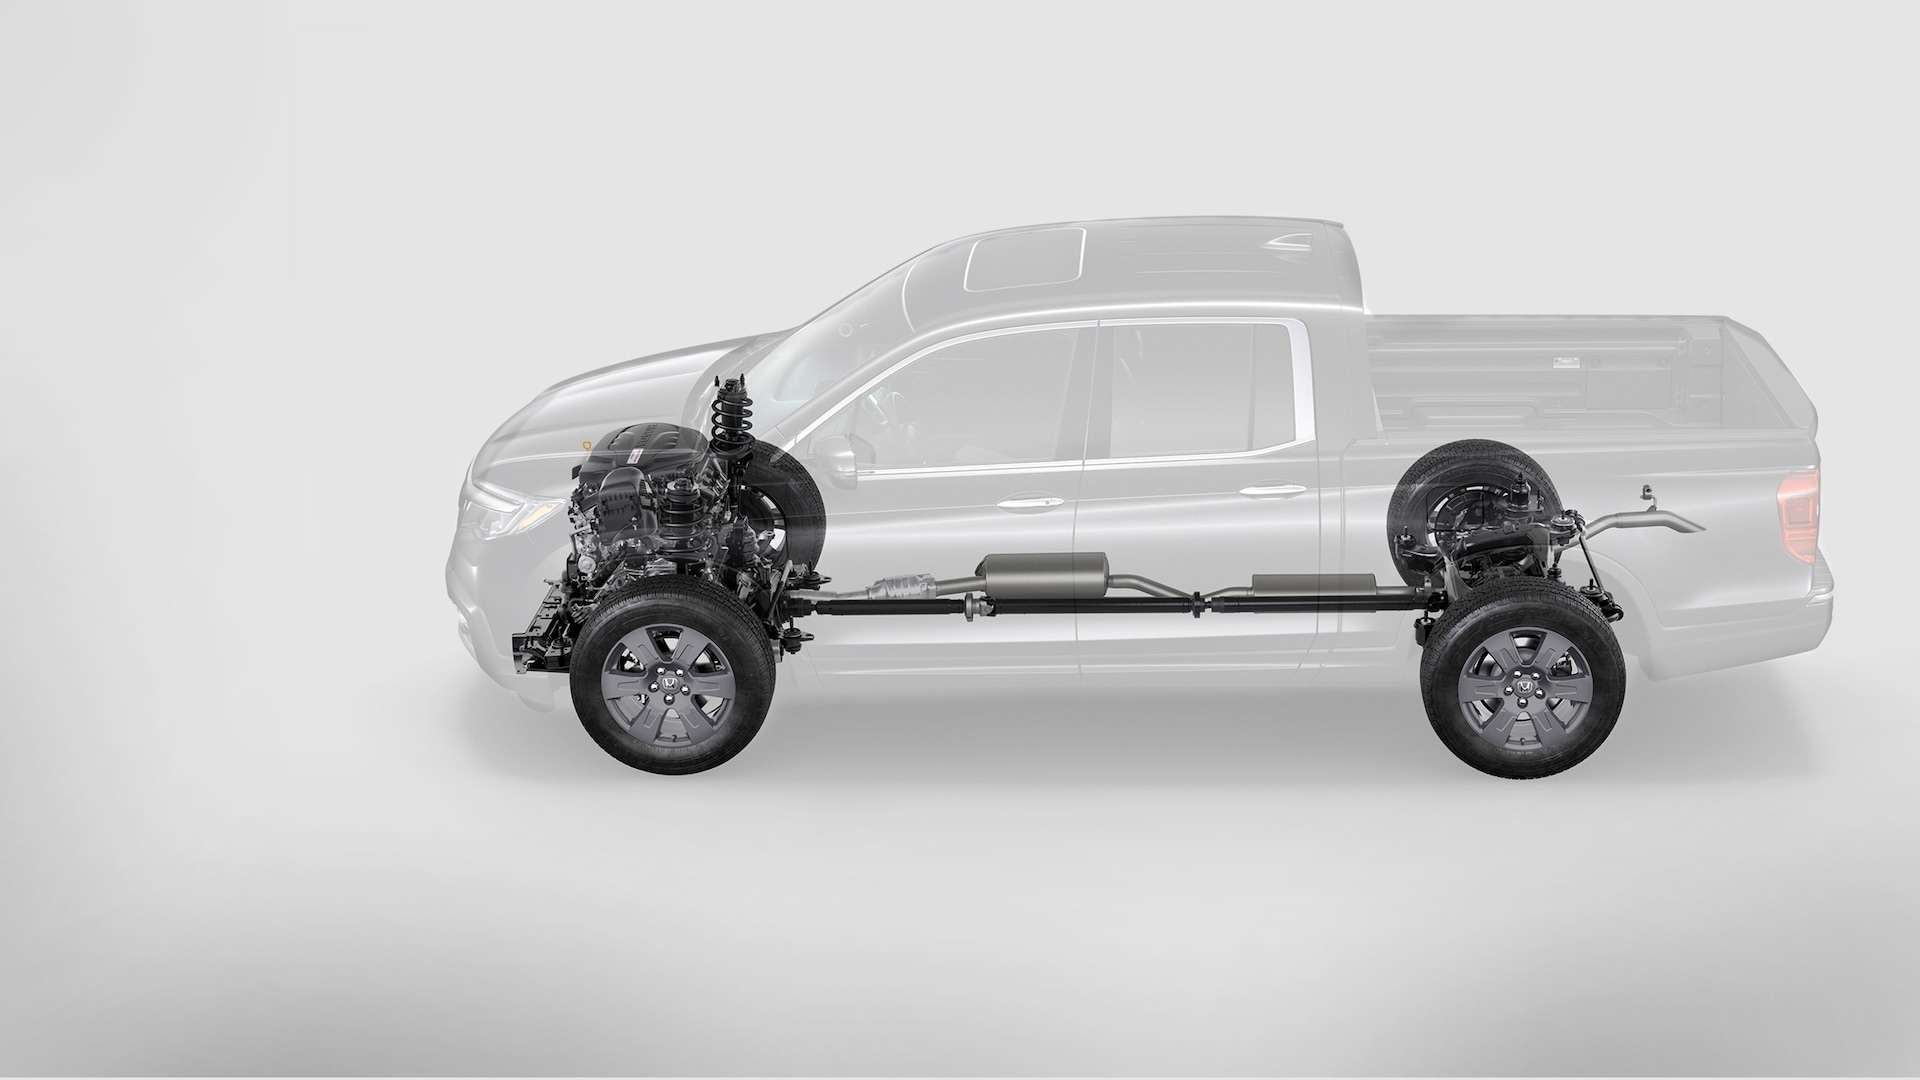 Interior suspension system detail in the 2020 Honda Ridgeline.